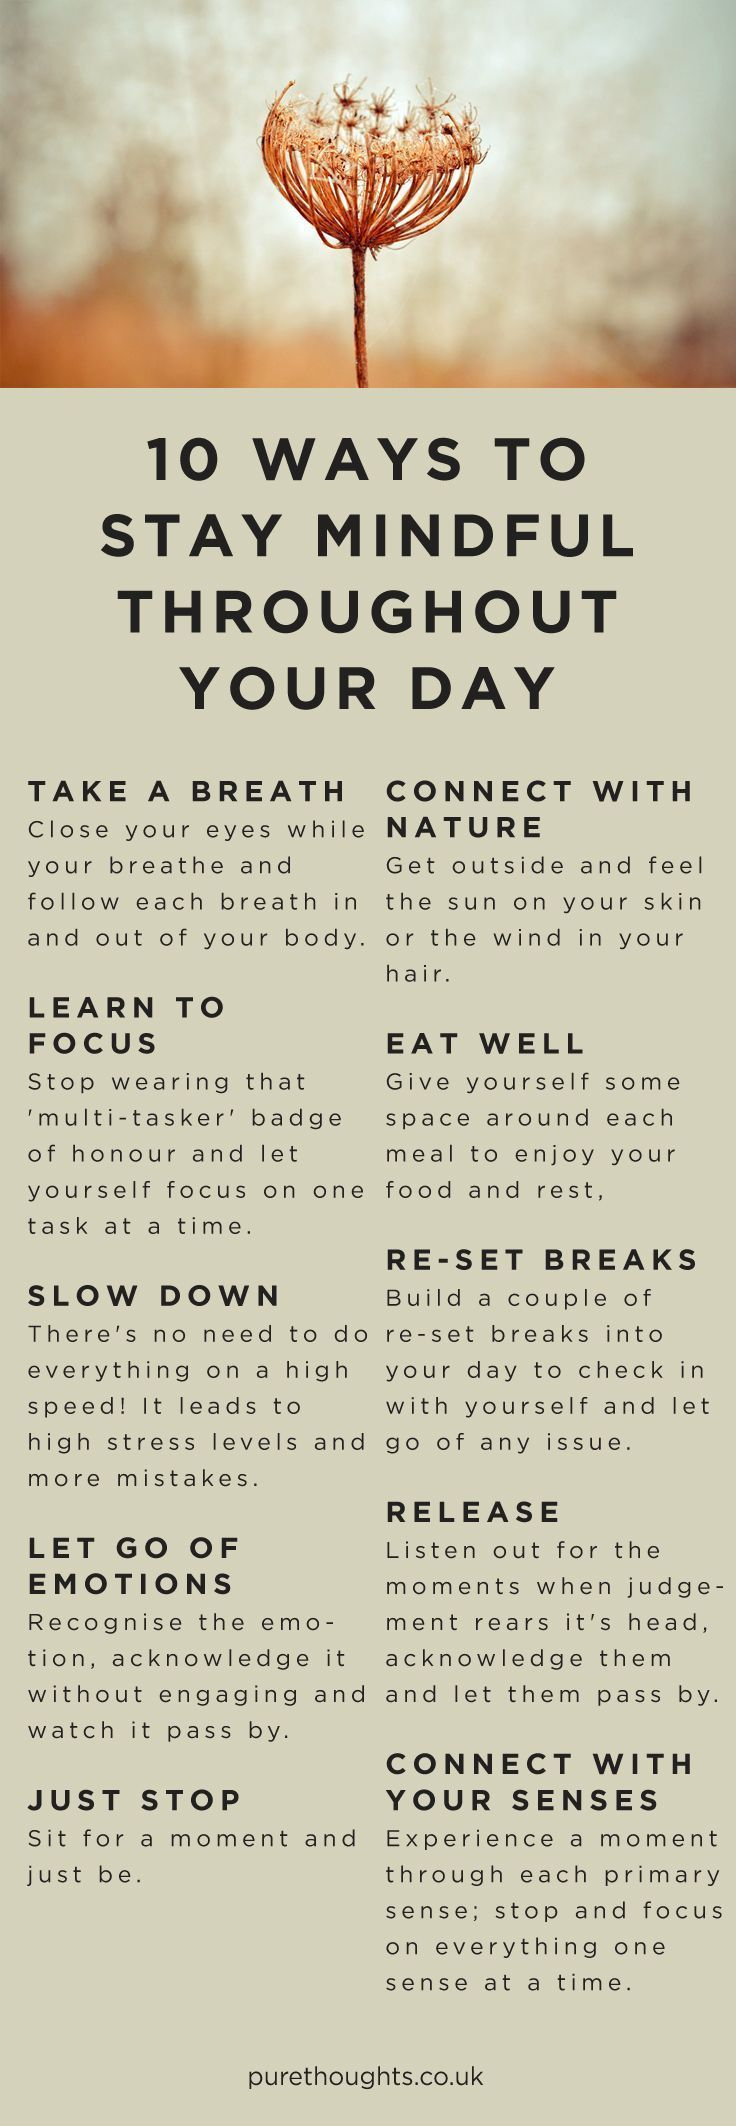 10 ways to stay mindful